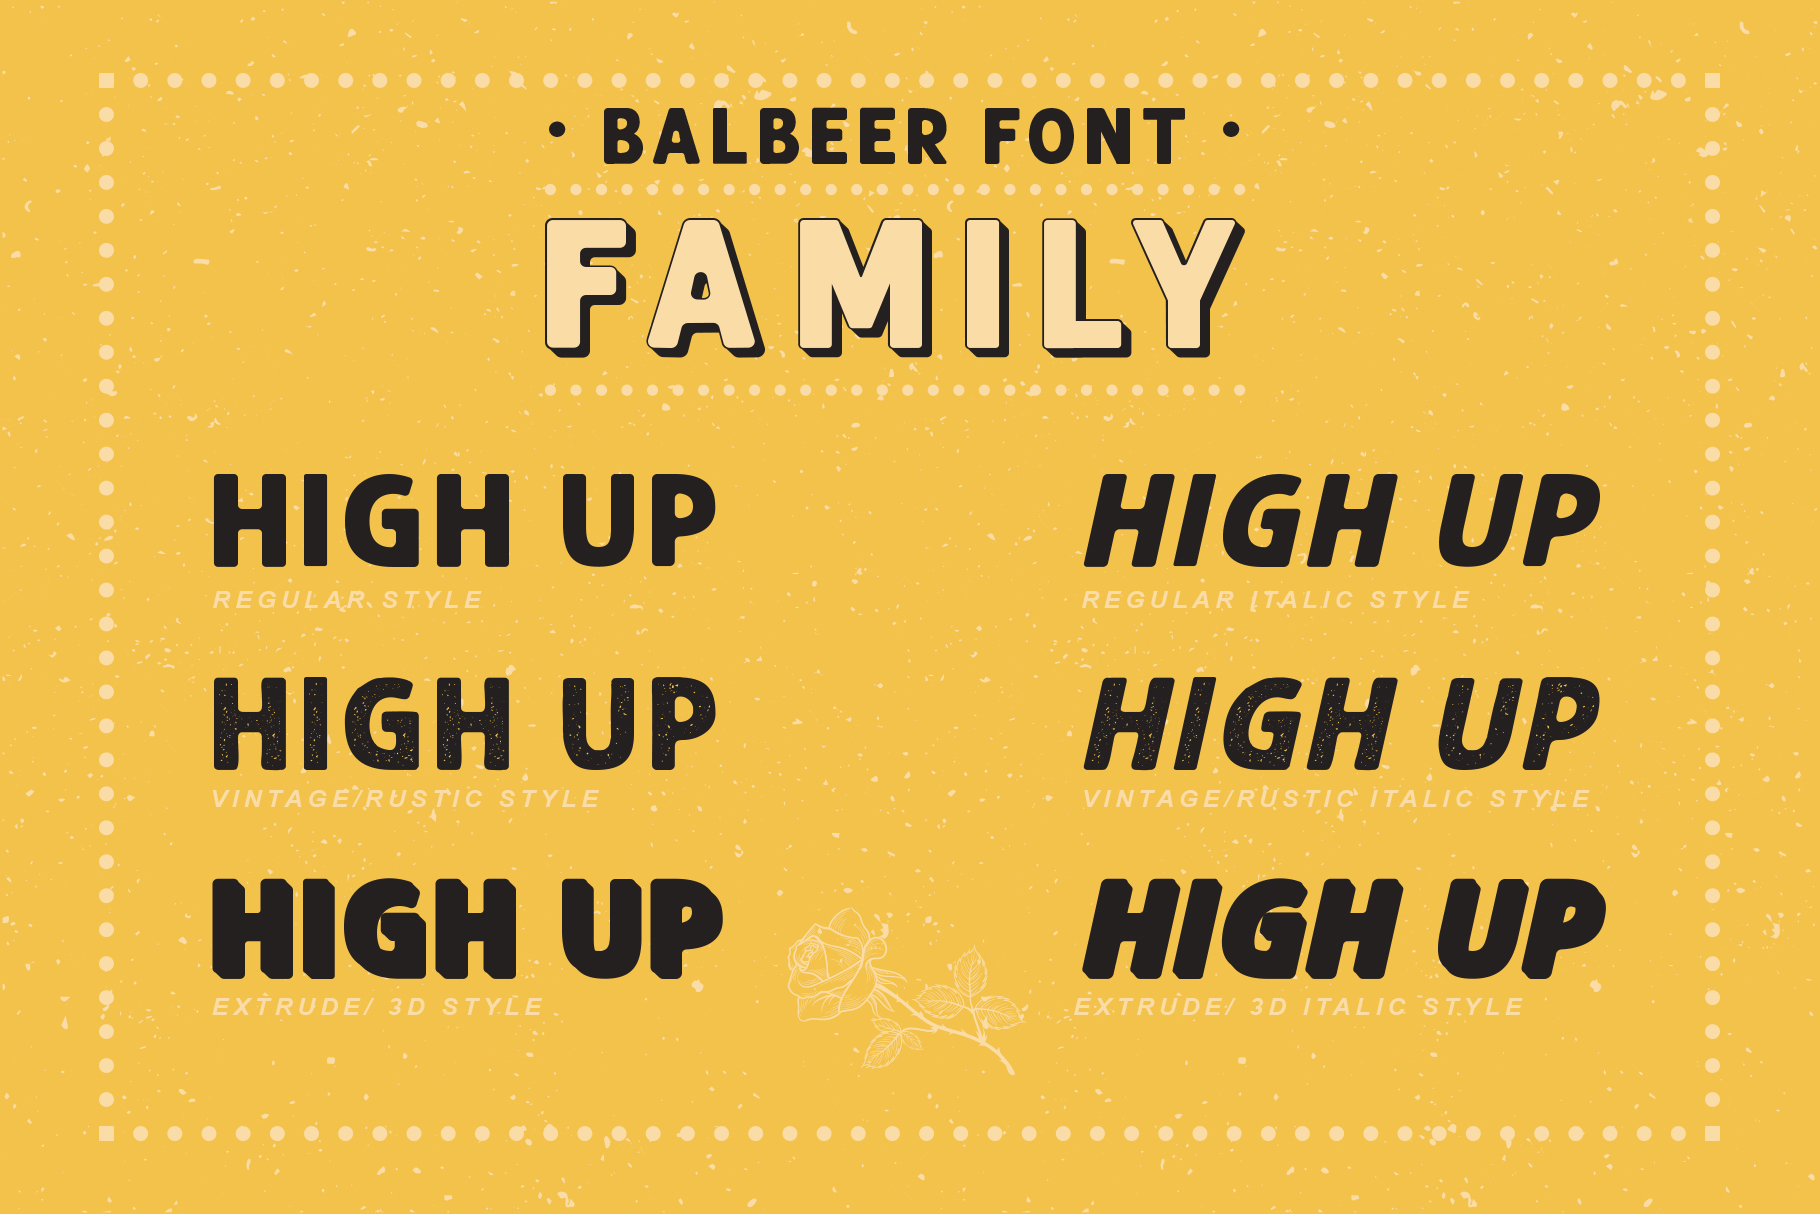 BALBEER FONT FAMILY BONUS - discount till end december example image 6